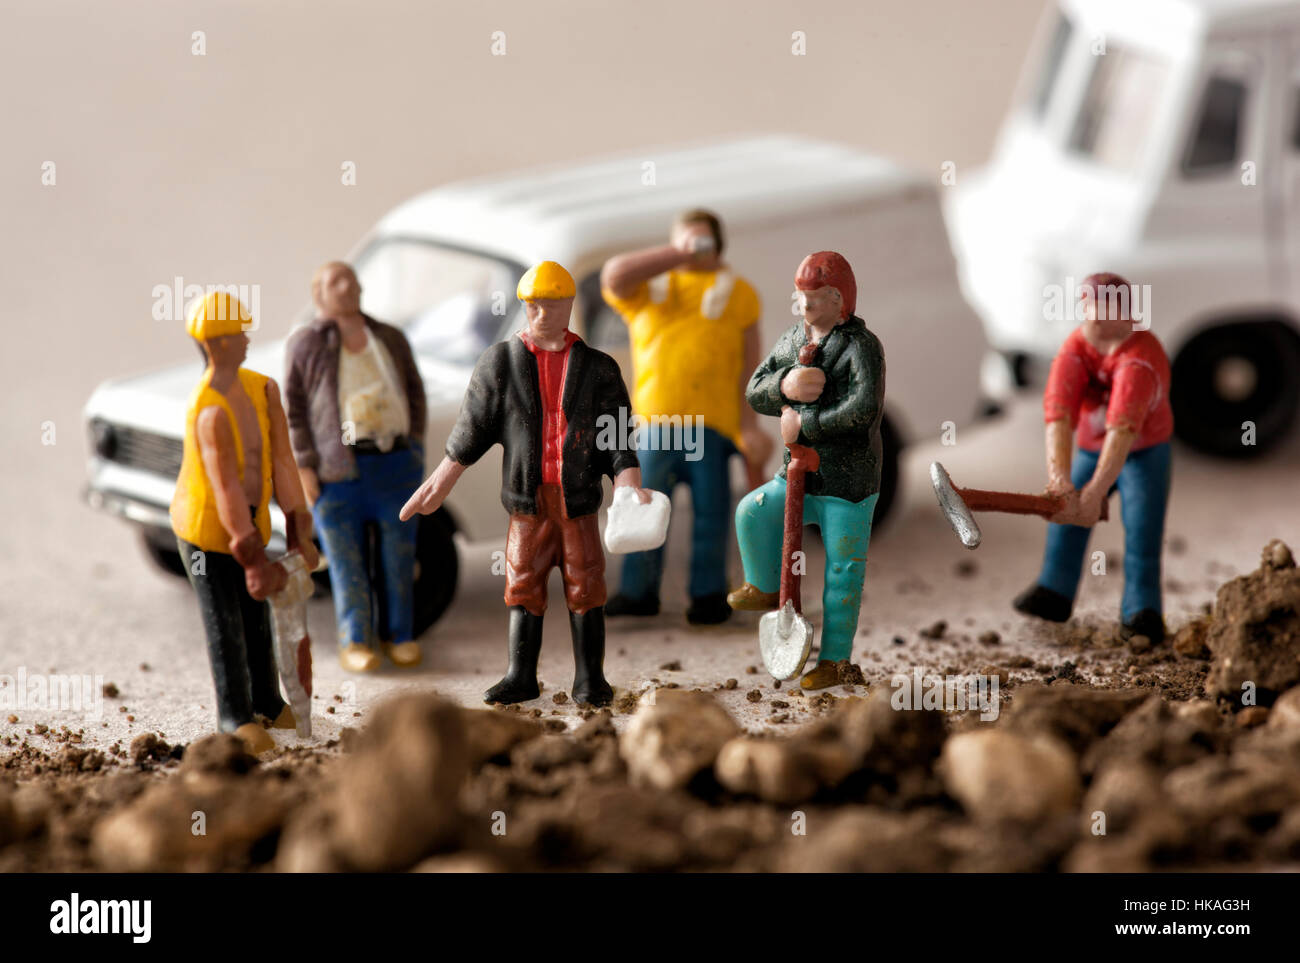 Miniature model workmen with their foreman and white vans - Stock Image